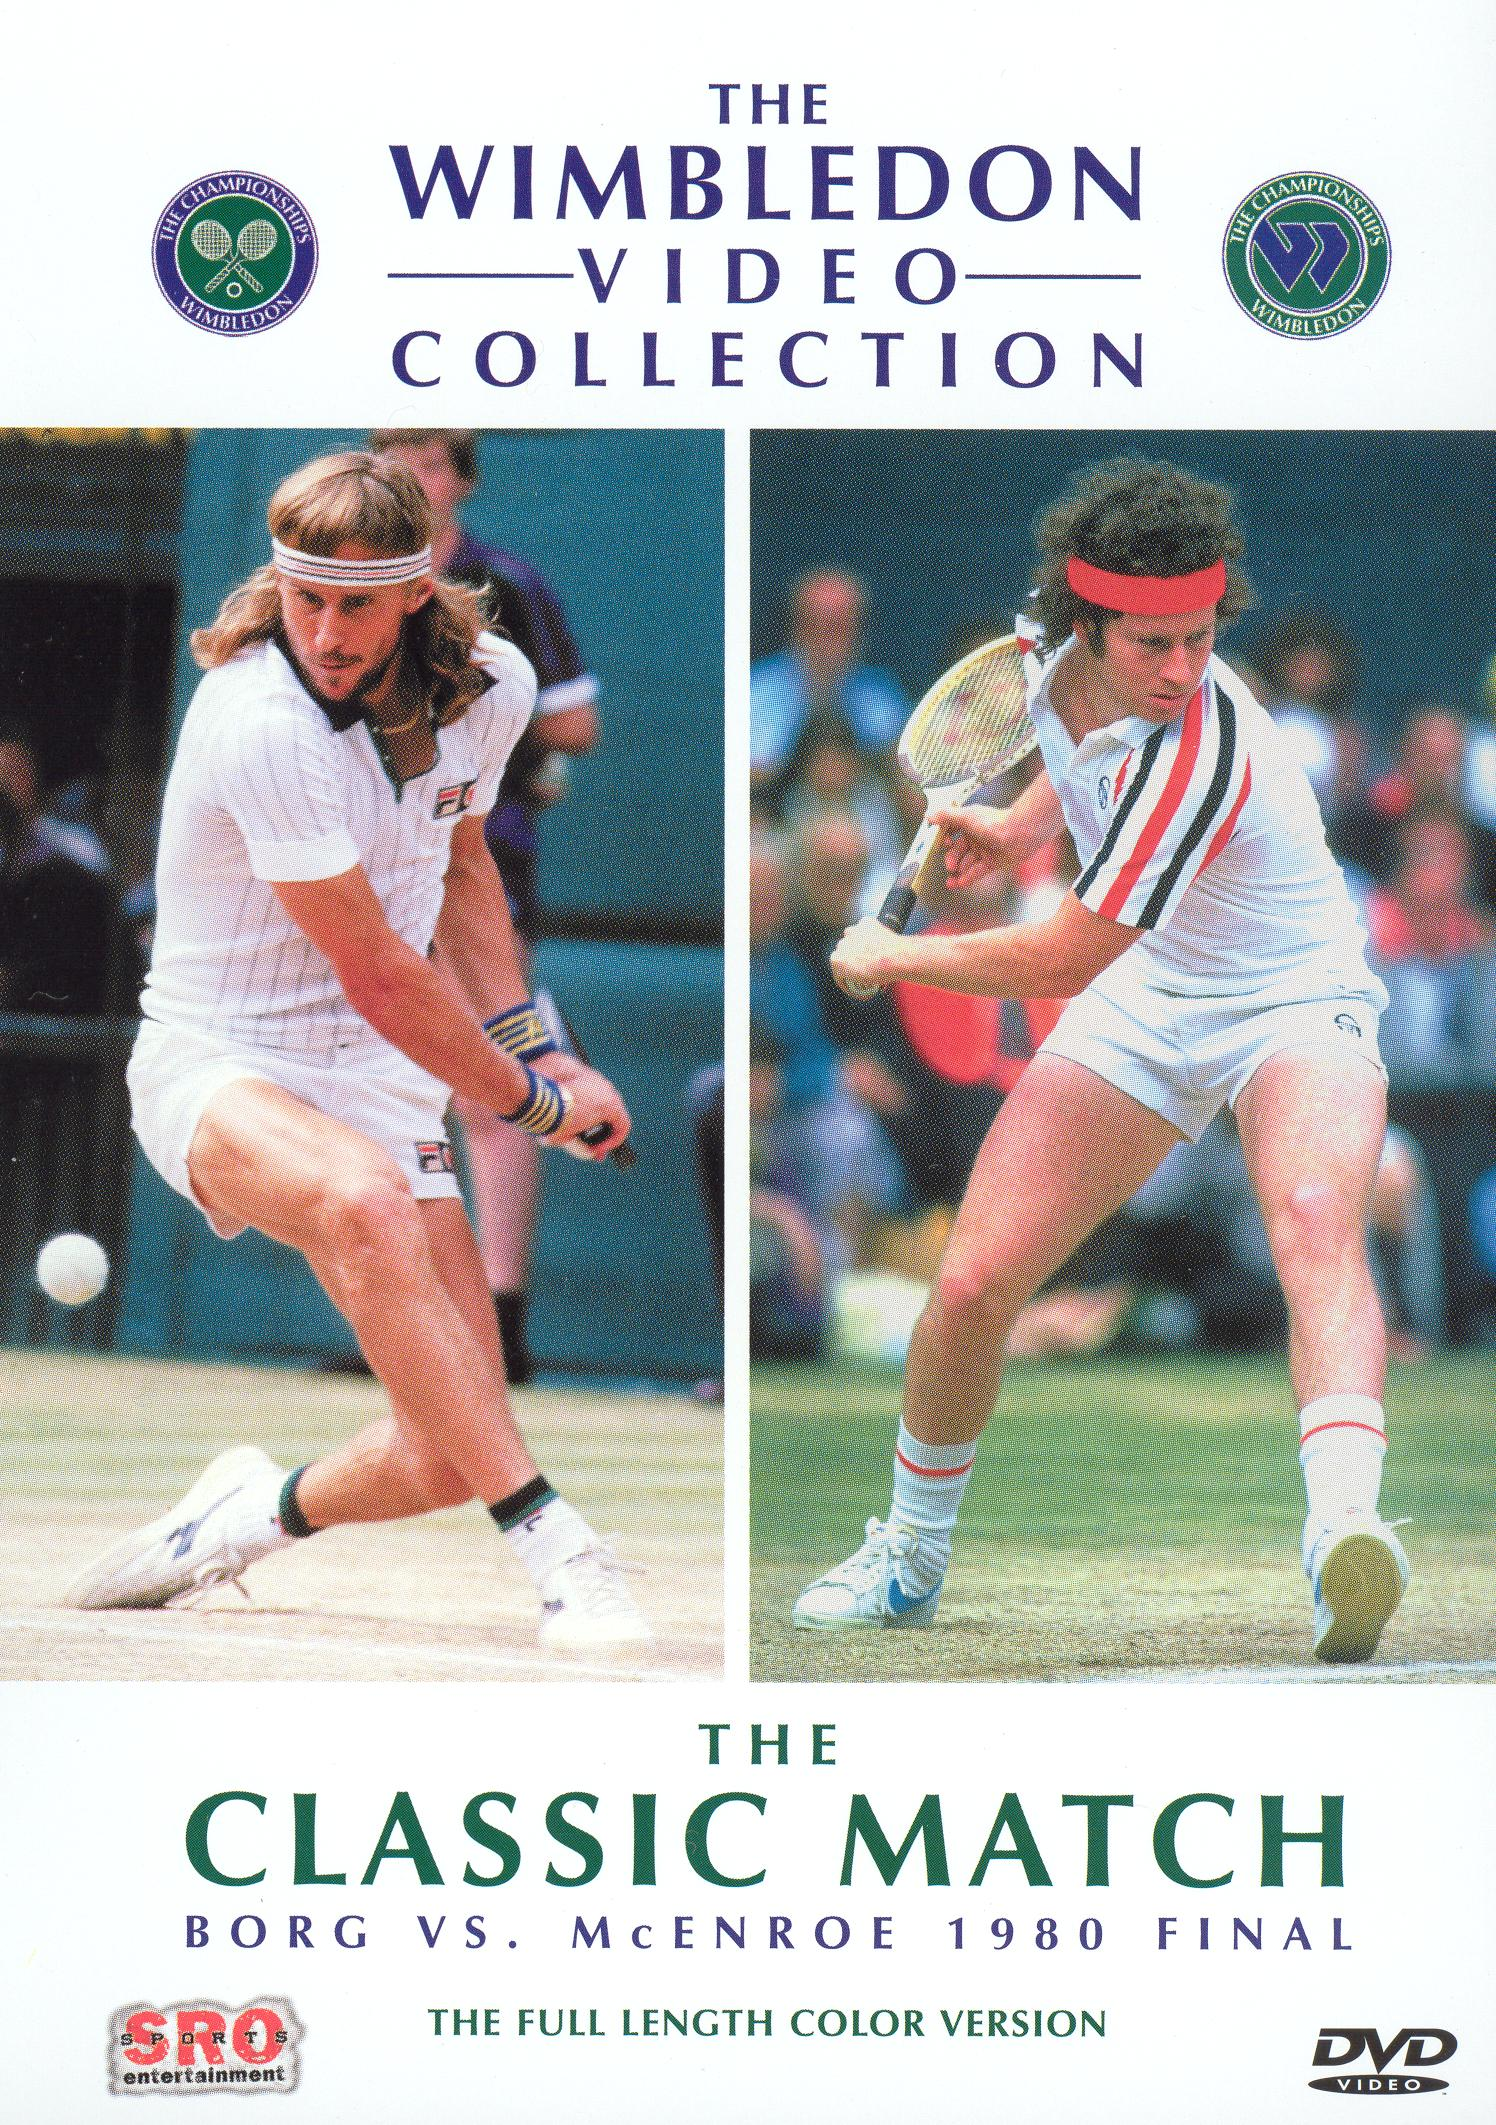 The Wimbledon Video Collection: The Classic Match - Borg vs. McEnroe 1980 Final